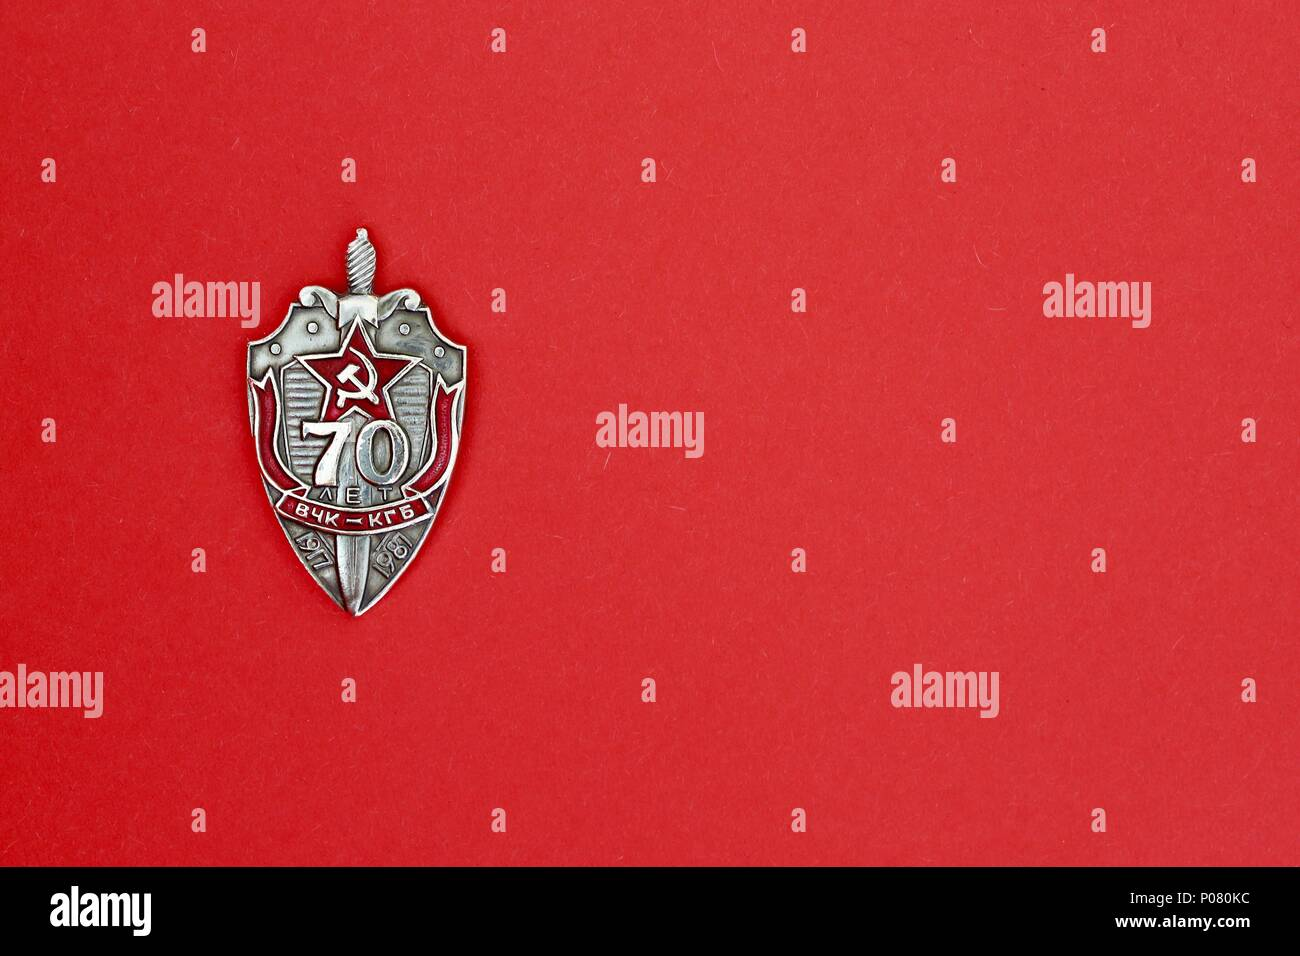 Single KGB badge commemorating 70 years anniversary. Stock Photo